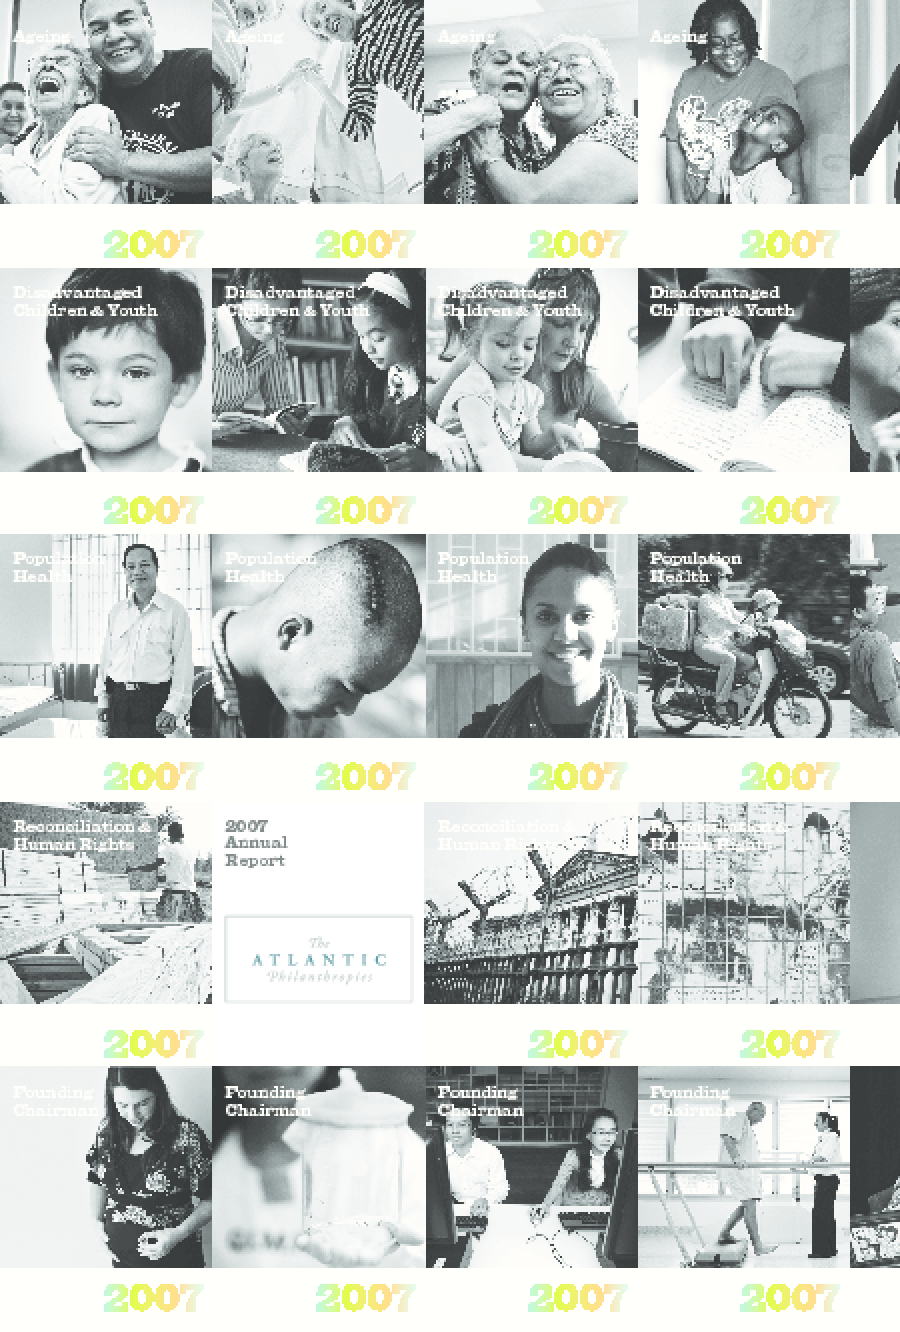 Atlantic Philanthropies - 2007 Annual Report